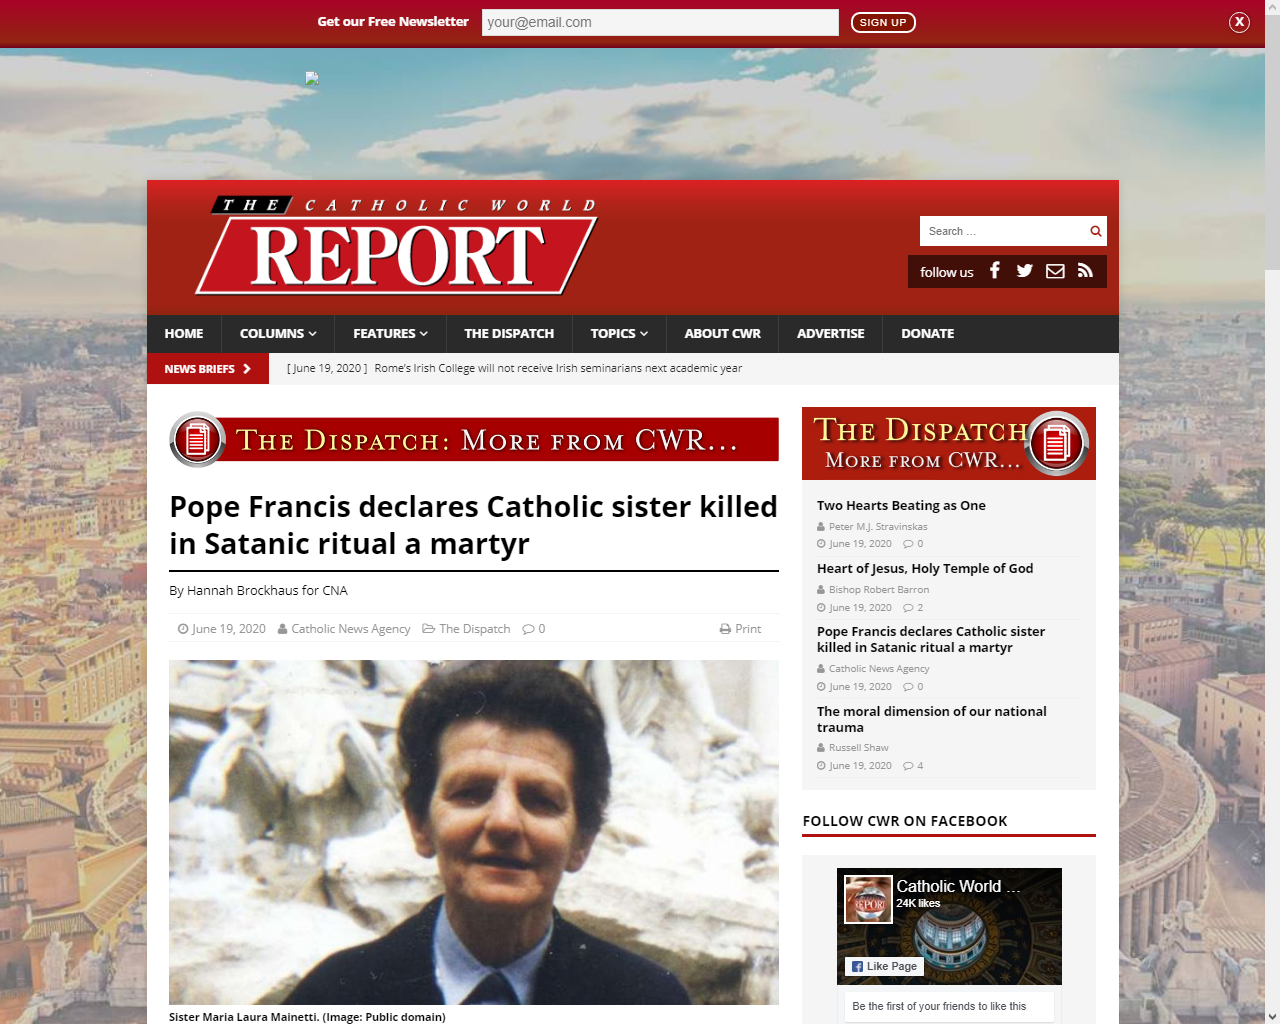 https://www.catholicworldreport.com/2020/06/19/pope-francis-declares-catholic-sister-killed-in-satanic-ritual-a-martyr/